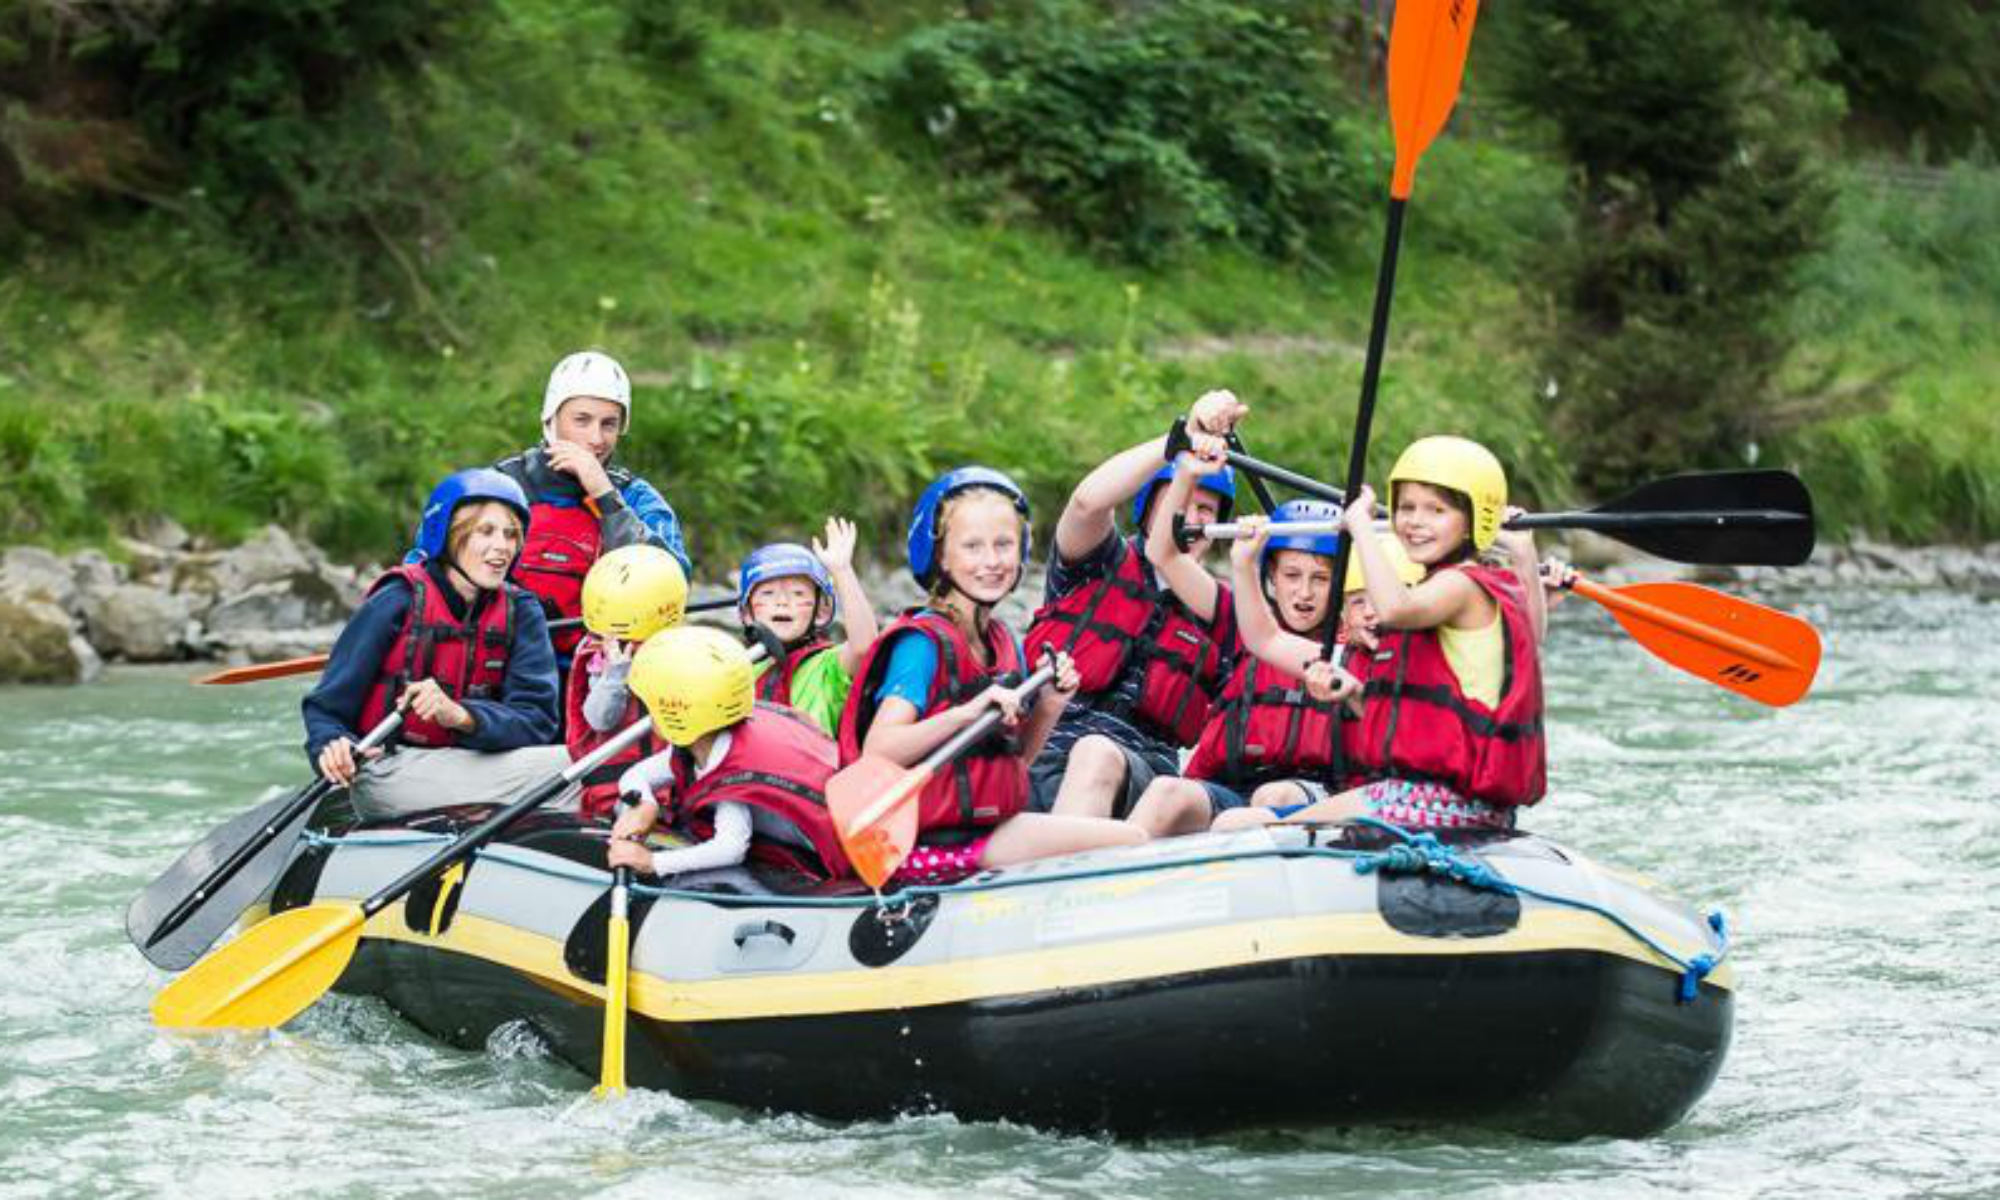 A large family group in a rubber dinghy while out rafting on the Saalach River.